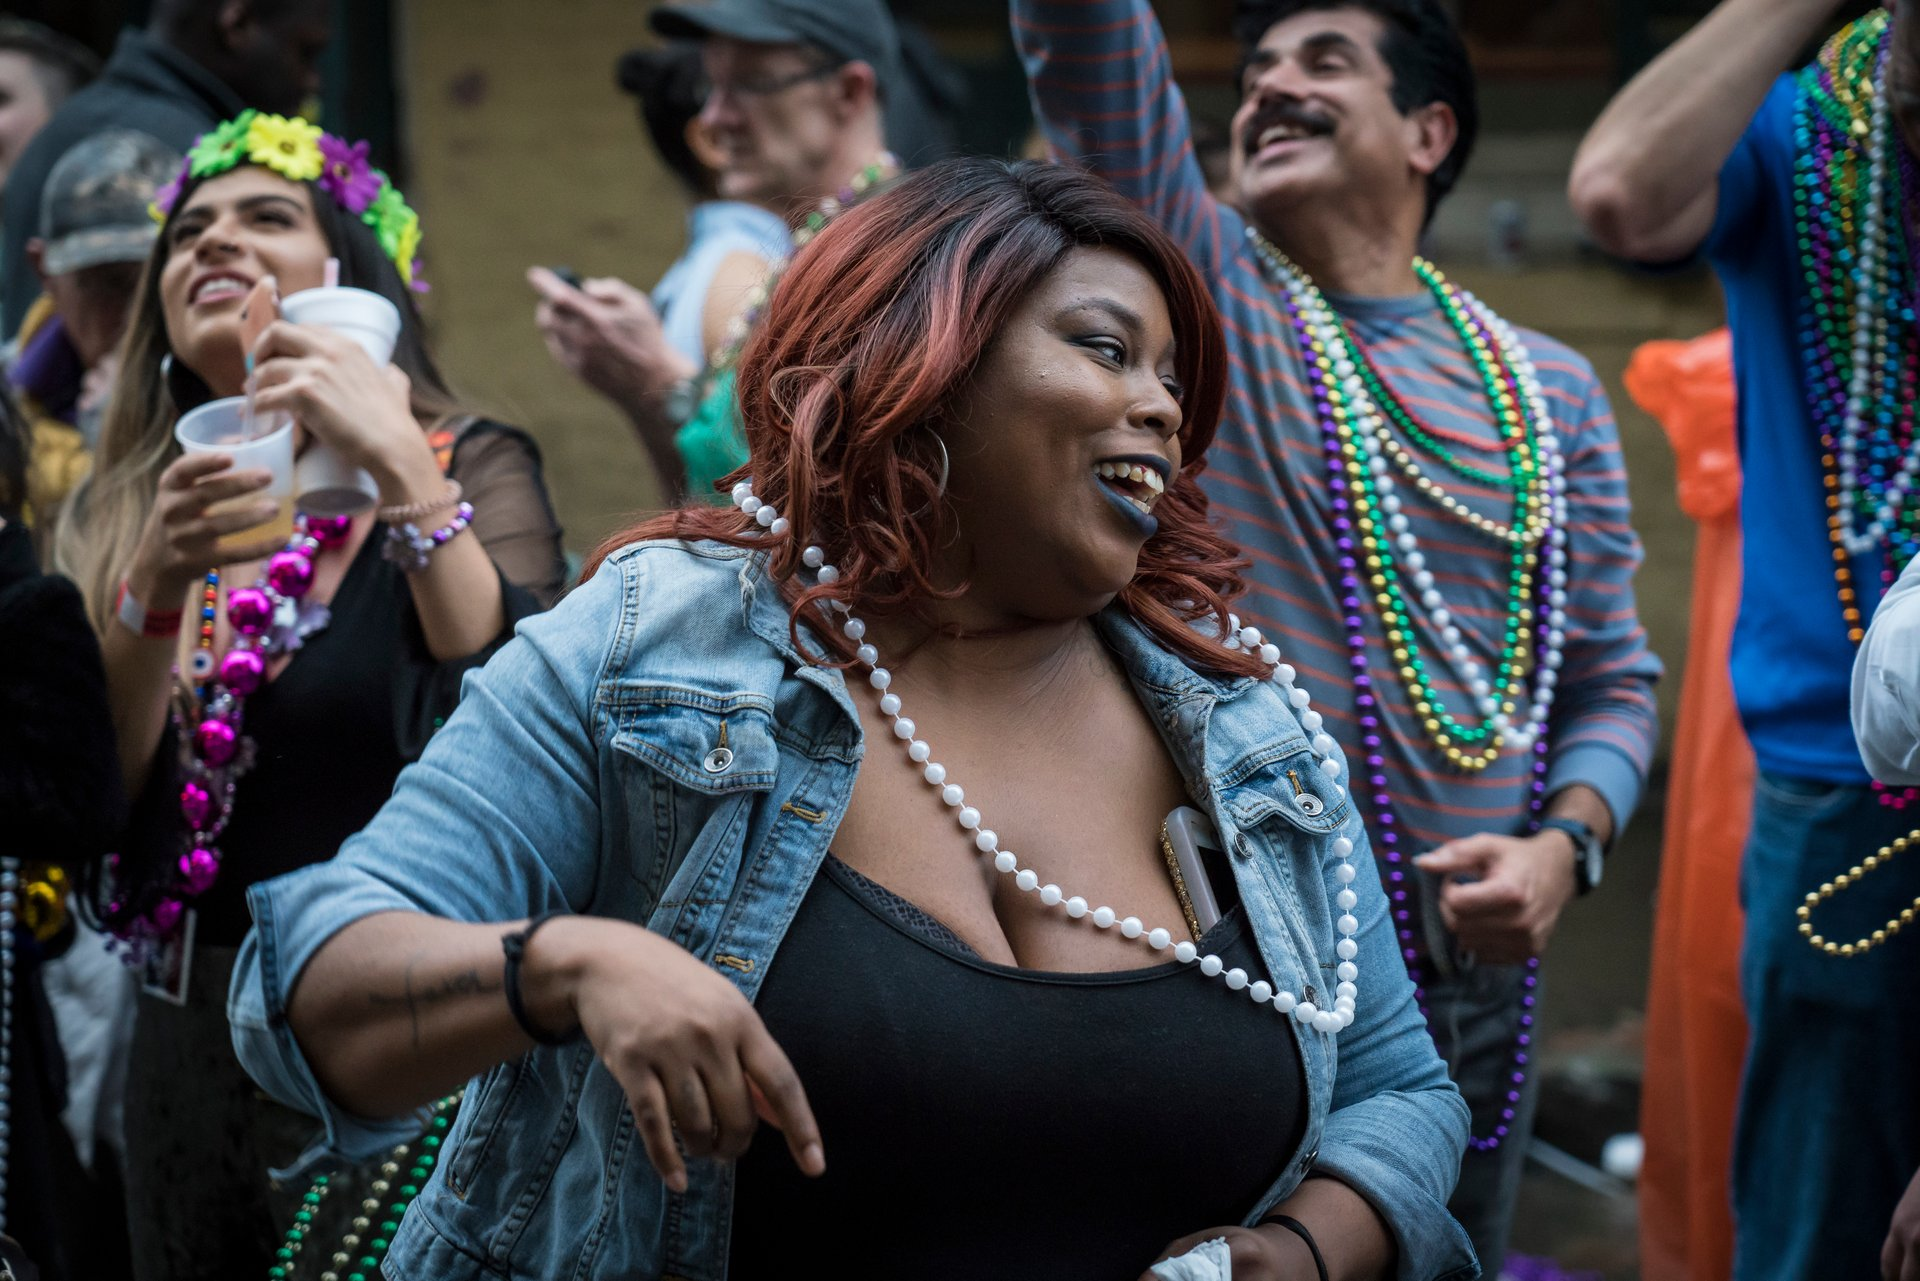 Mardi Gras in New Orleans 2020 - Best Time